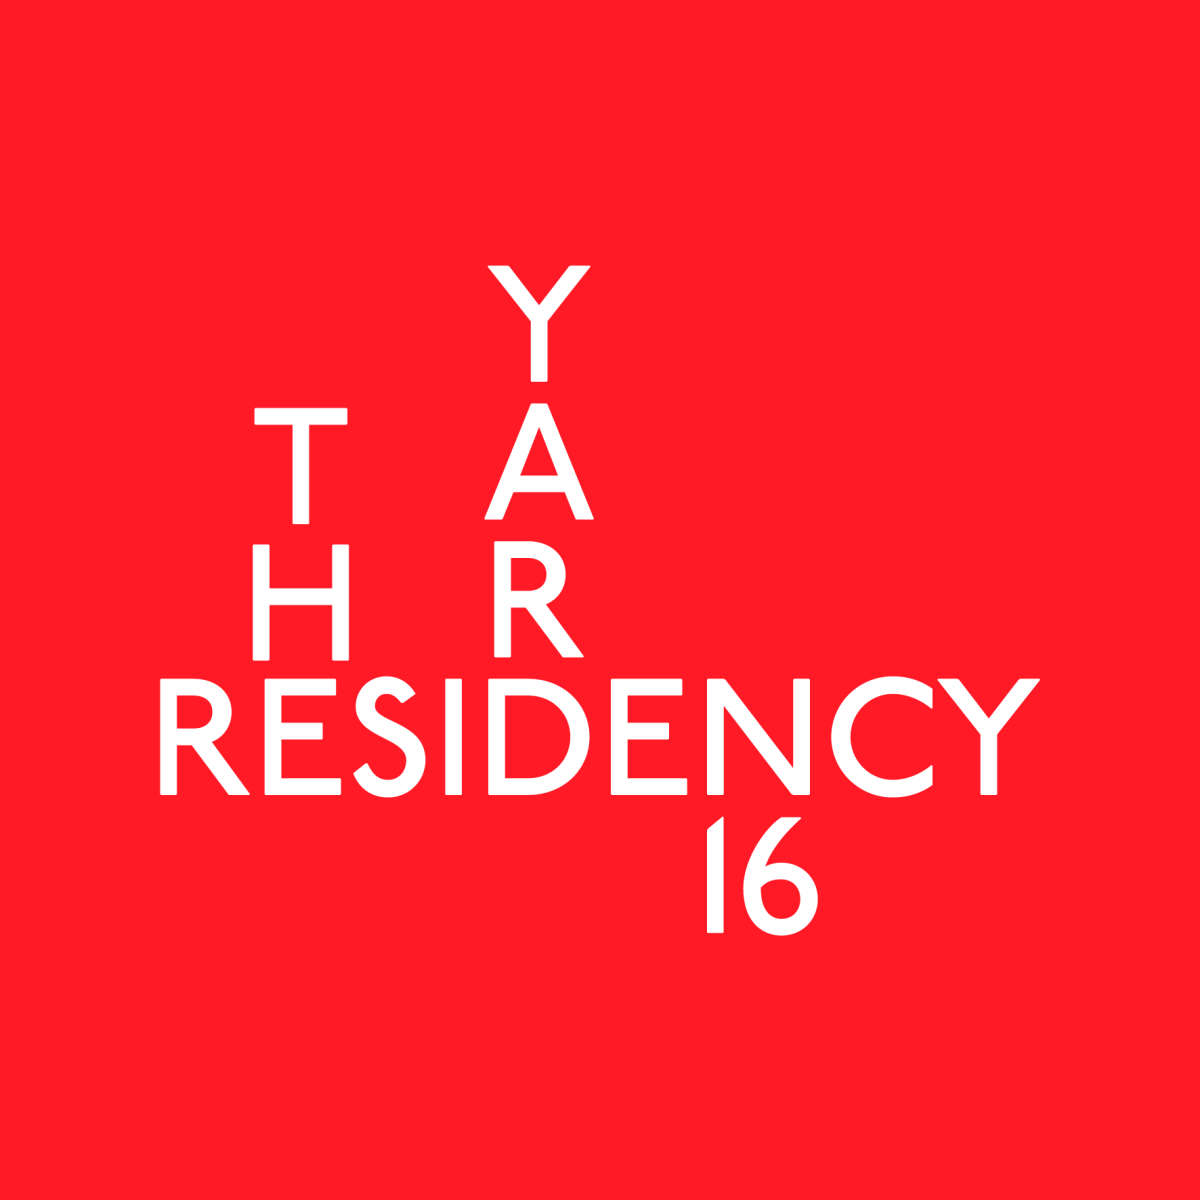 yard16logo_red-01